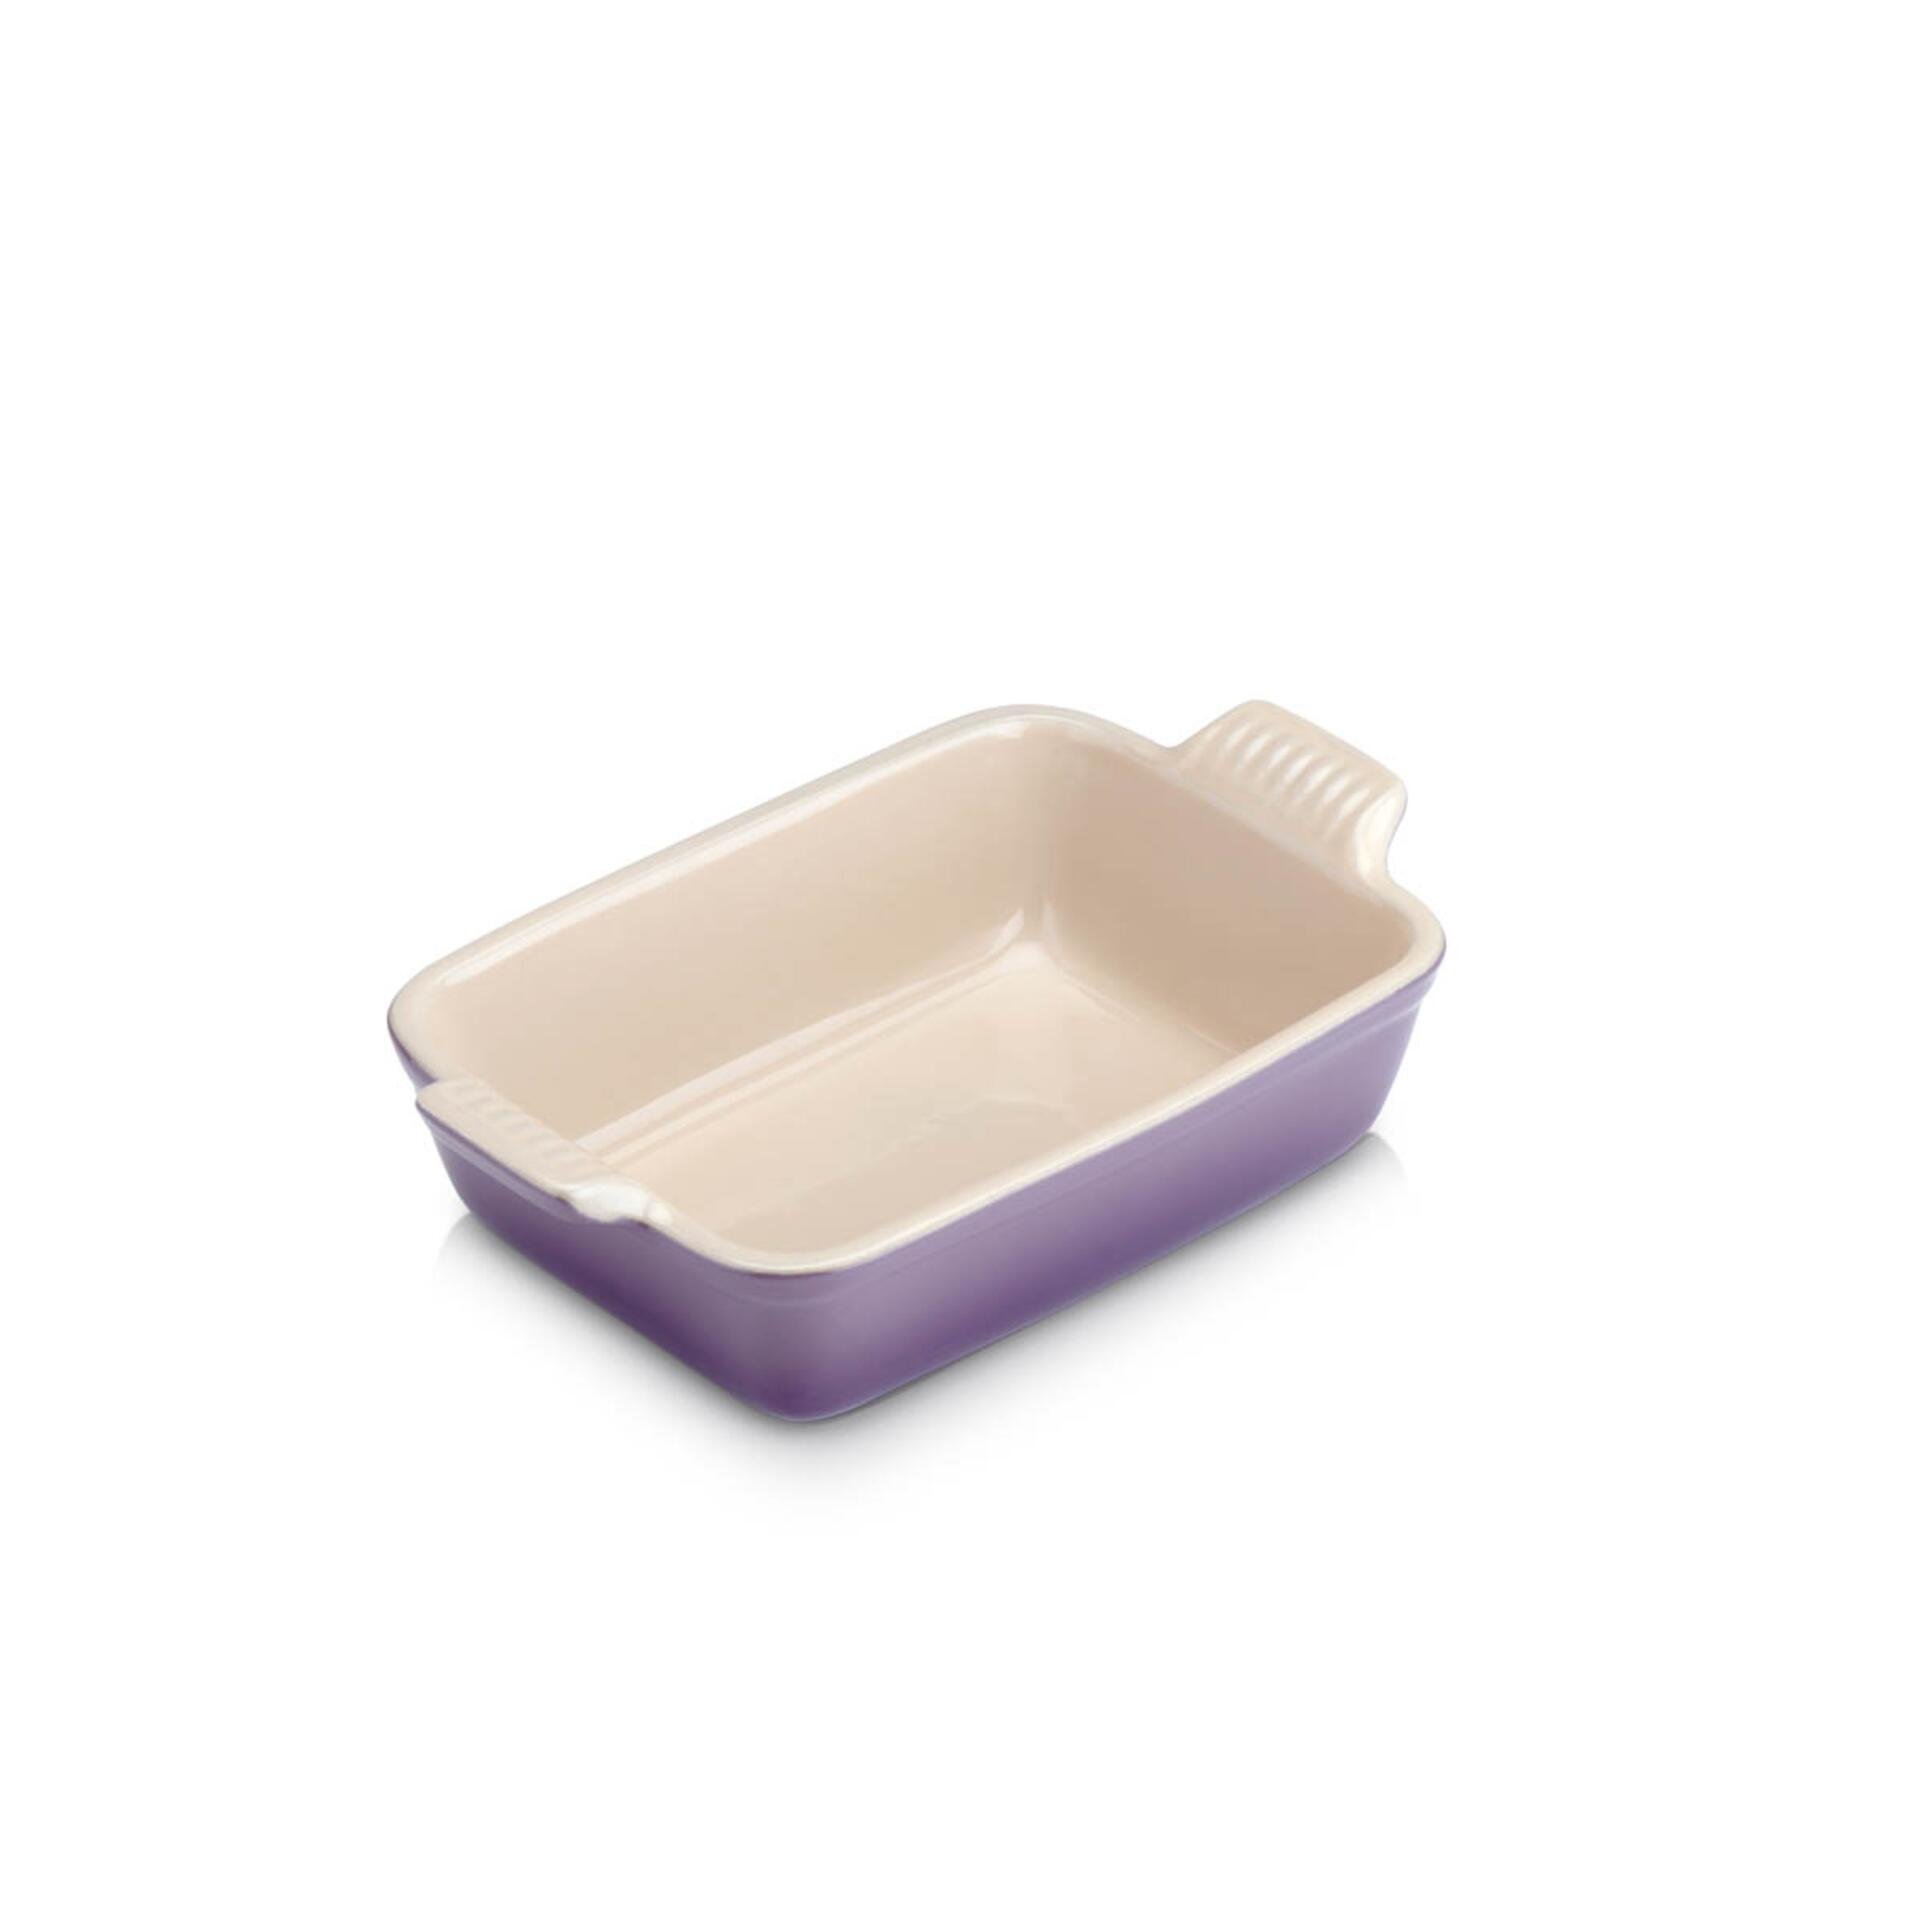 Le Creuset Auflaufform Tradition 13 x 19 cm Ultra Violet